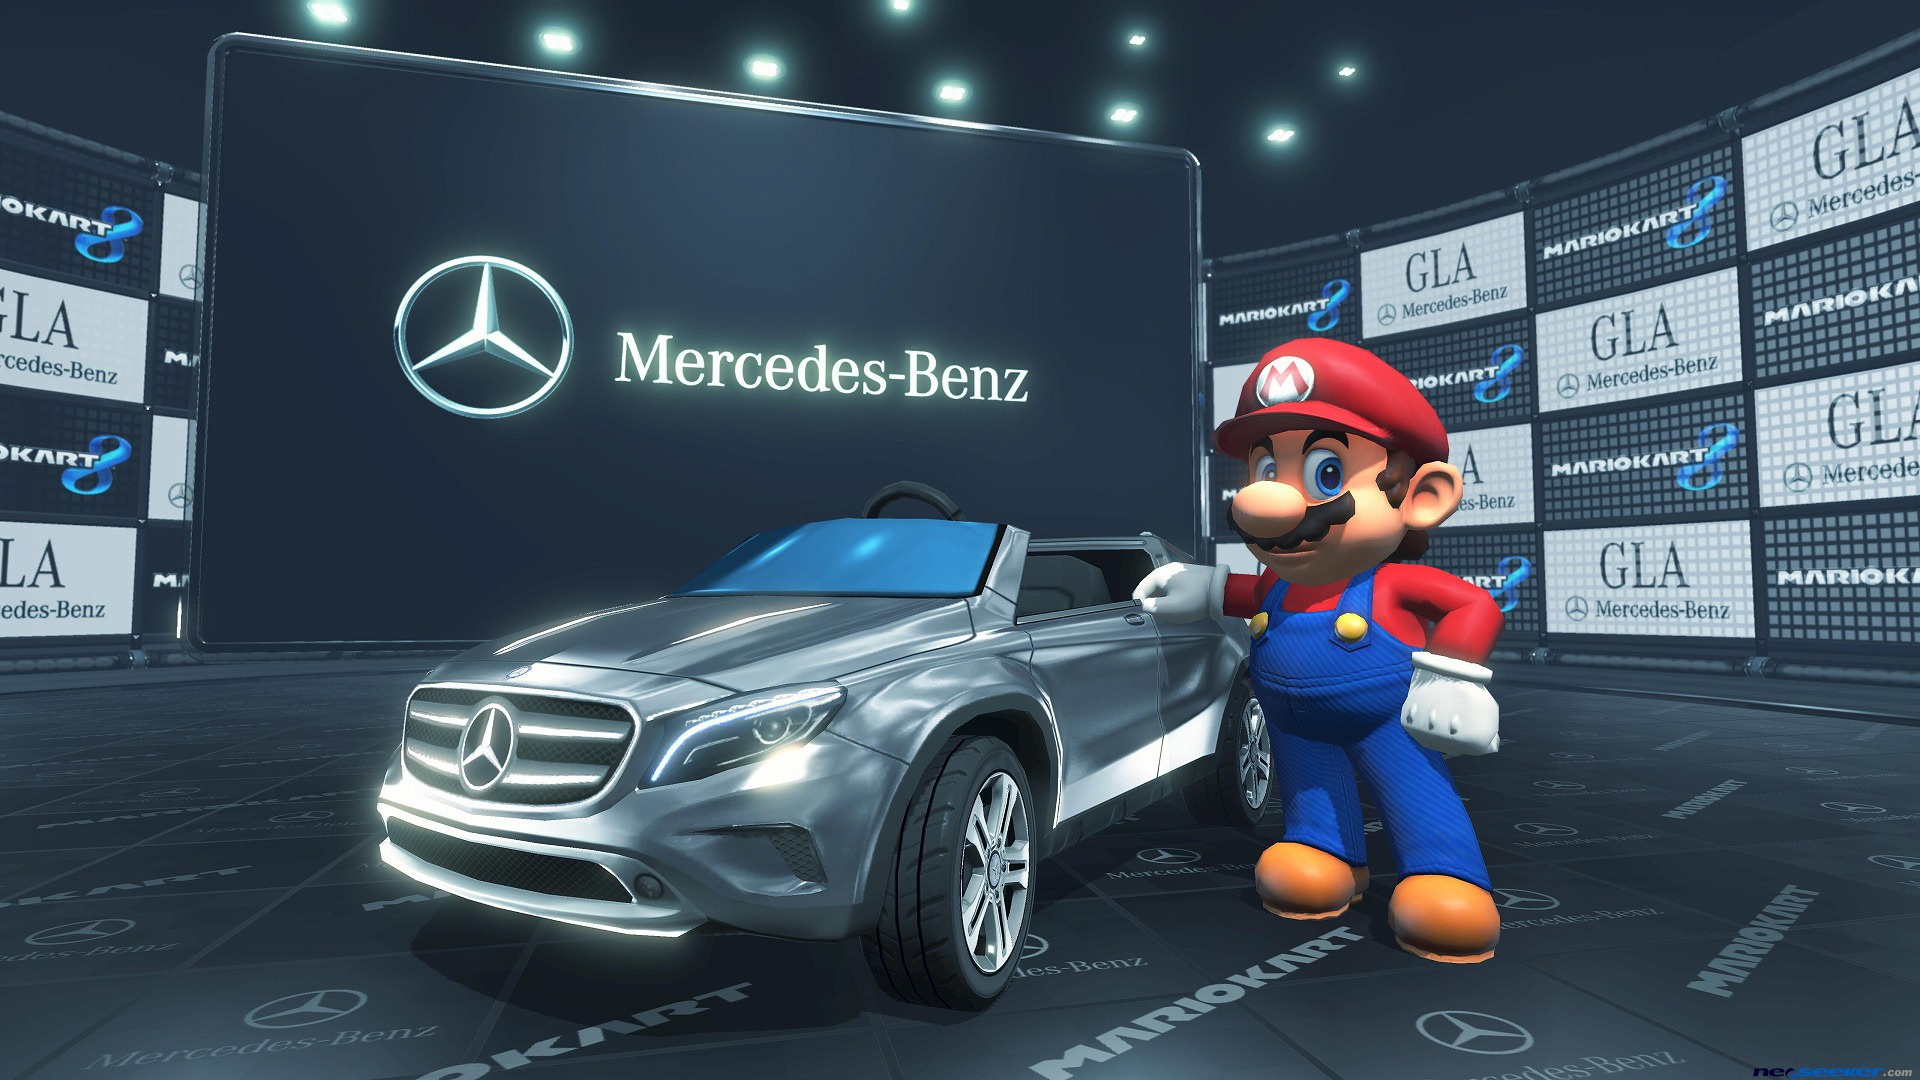 Mario Kart 8 updates this month with Mercedes-Benz DLC